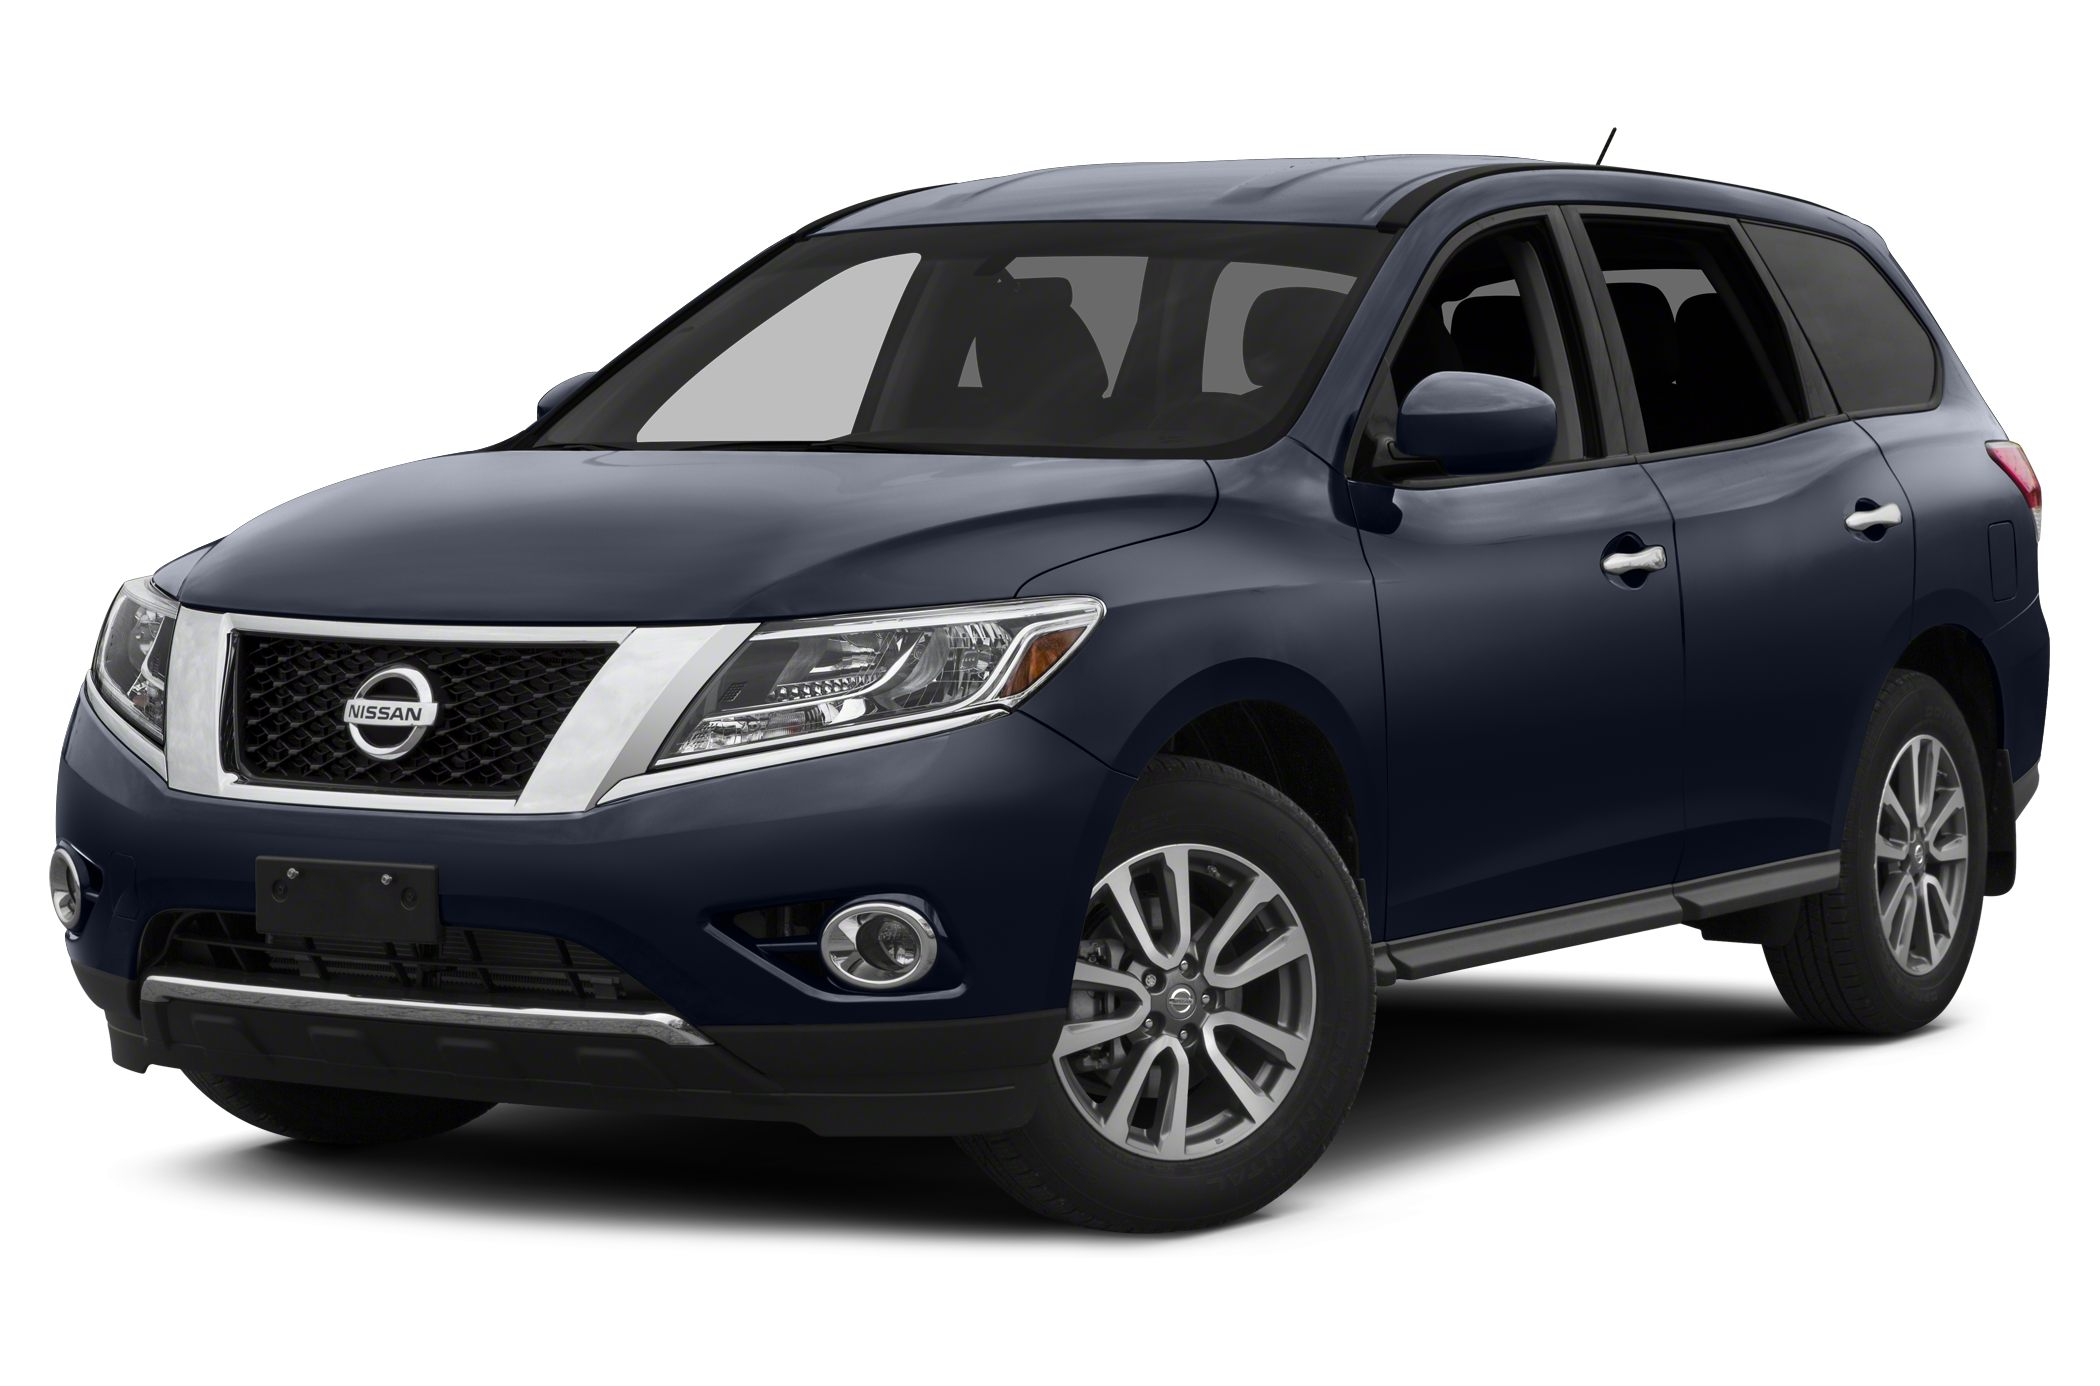 2014 Nissan Pathfinder SL SUV for sale in Hawthorne for $41,240 with 26 miles.